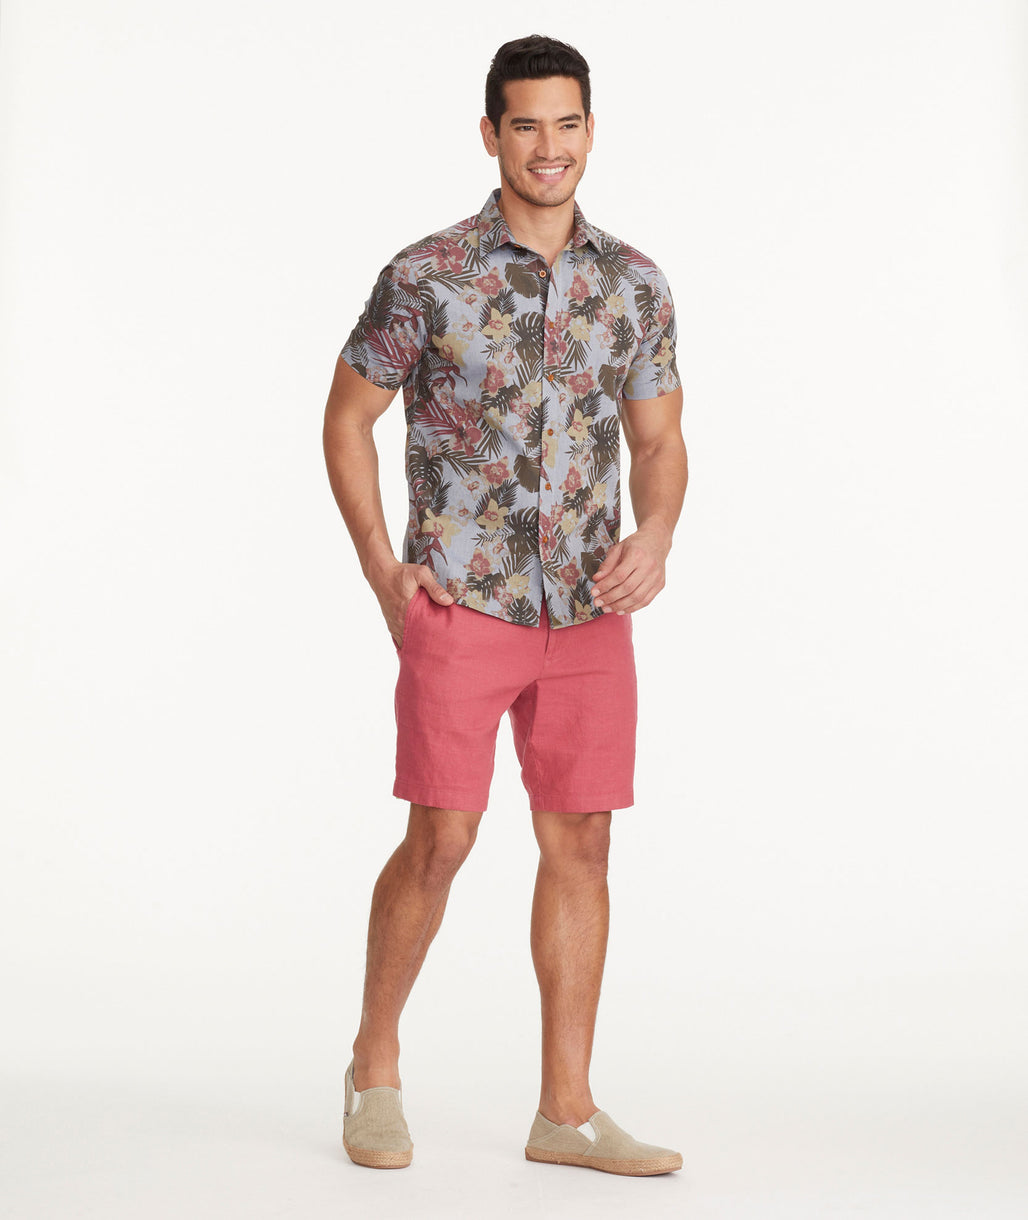 Model wearing a Red Cotton-Linen Shorts